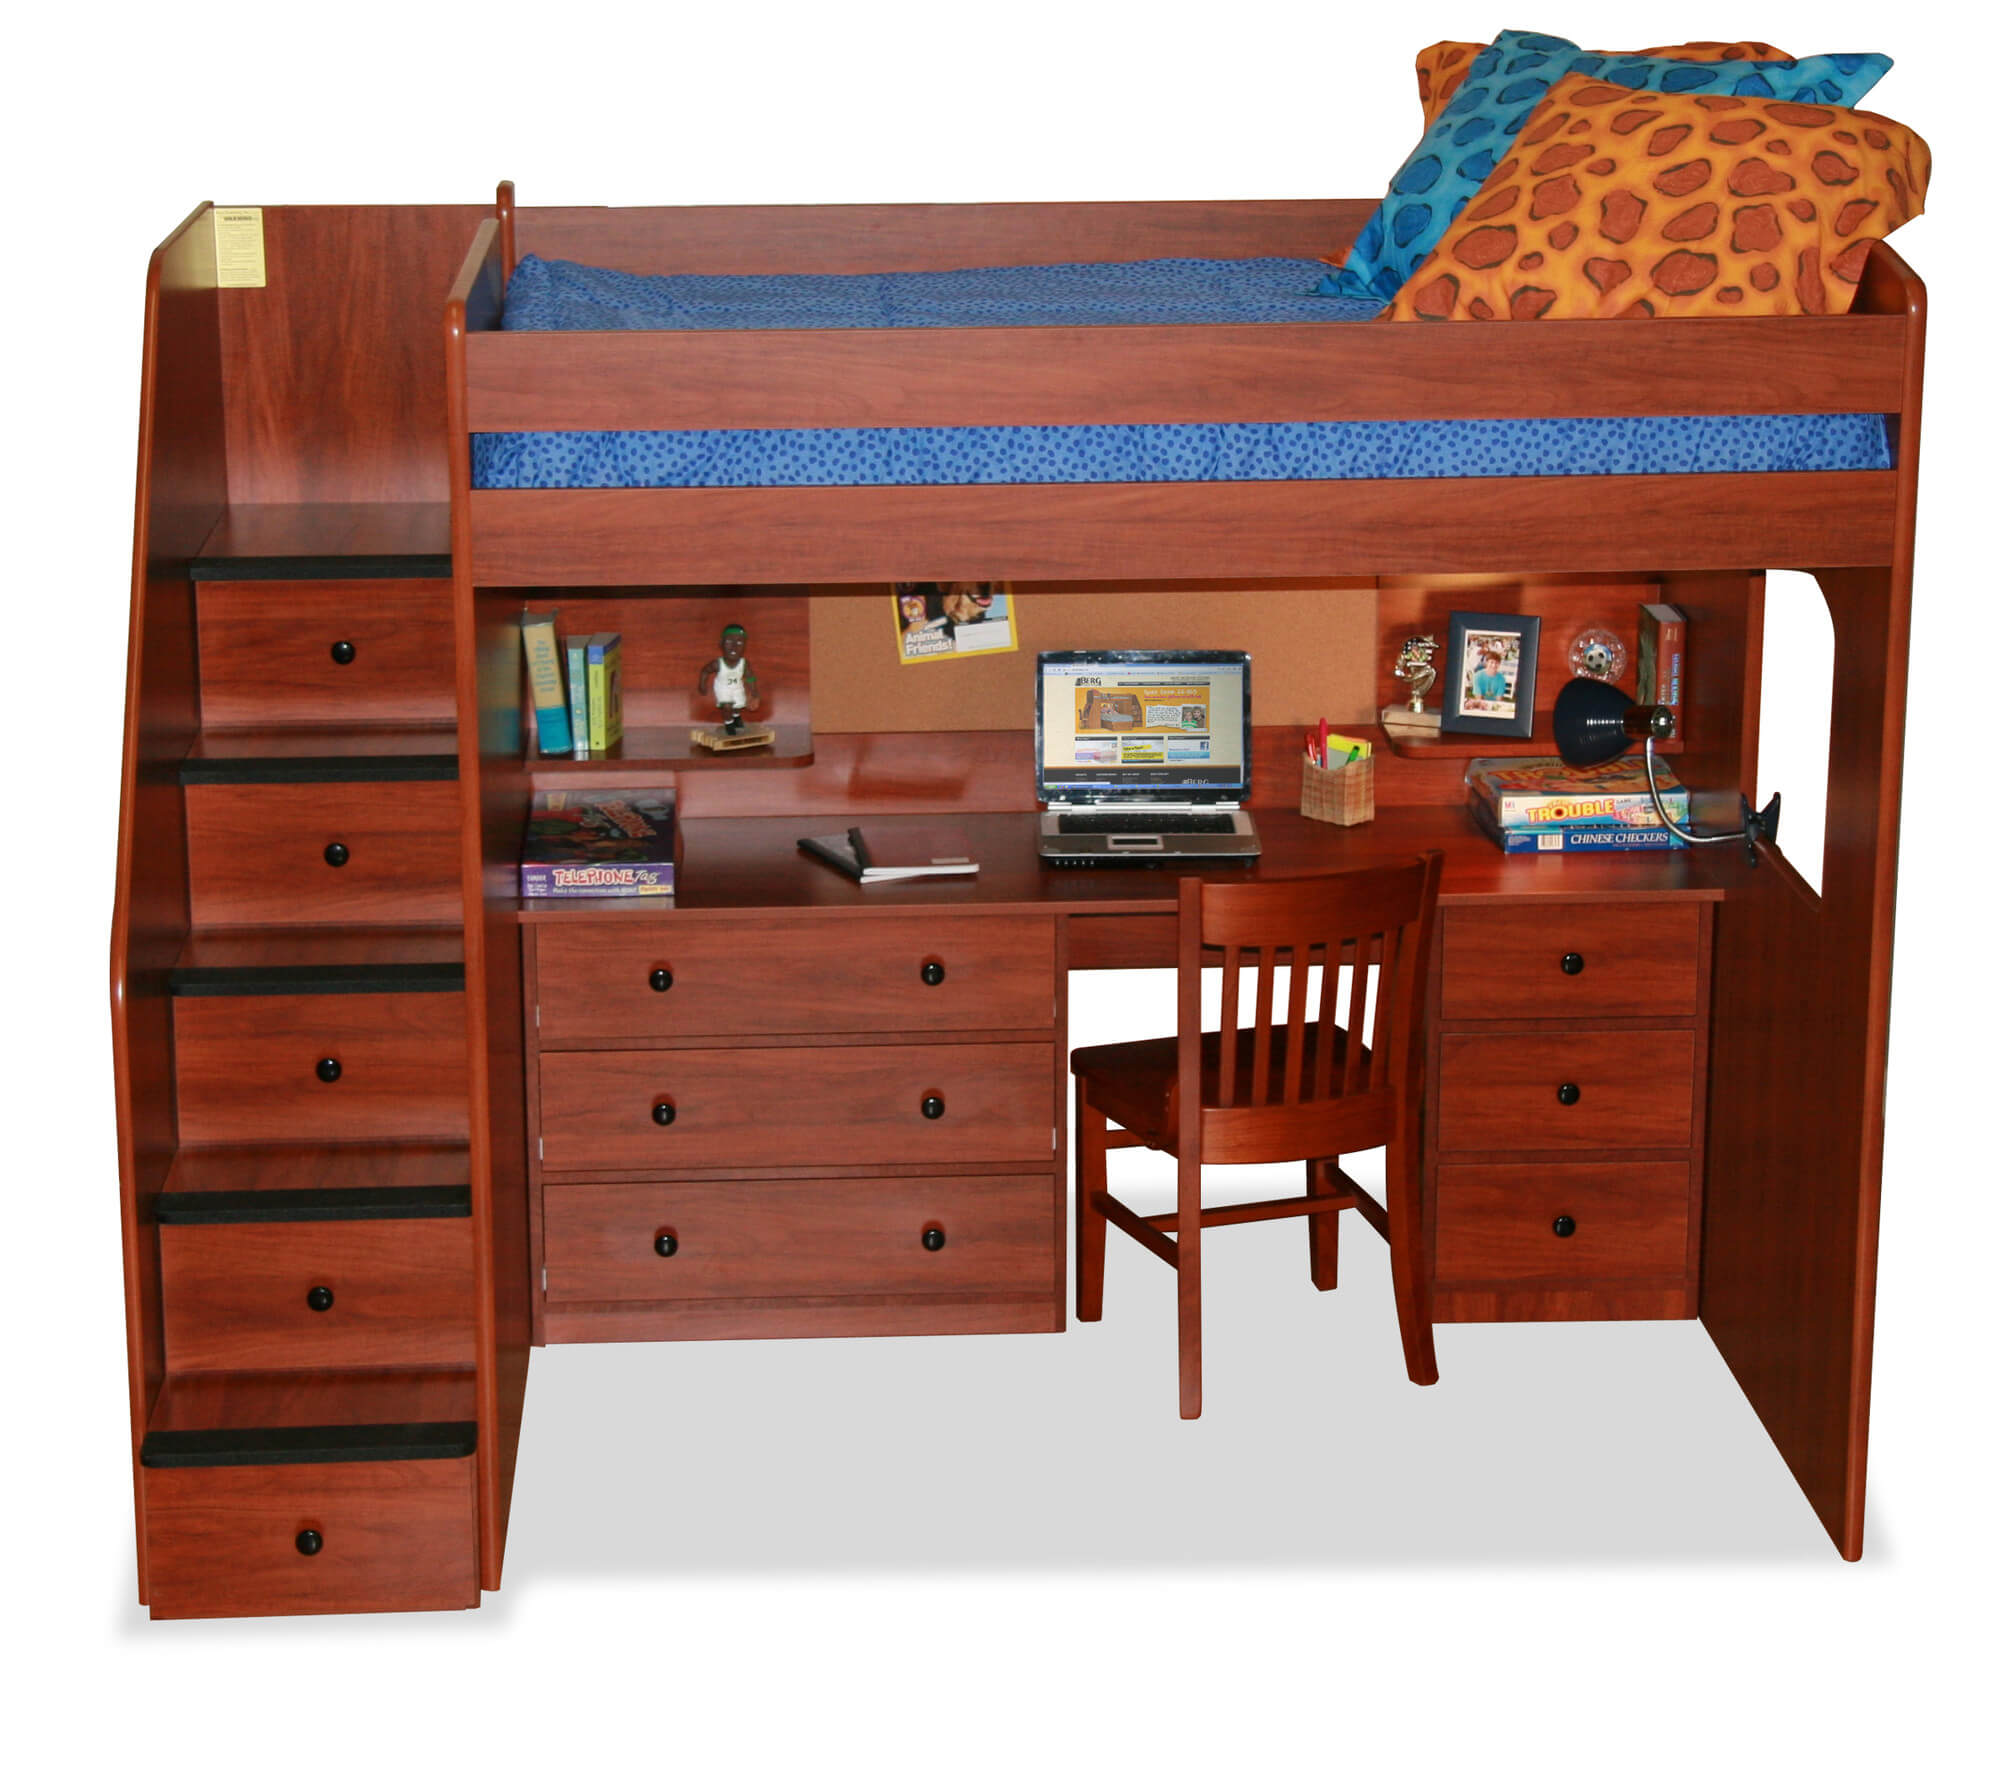 This rich toned wood bed features a lavish desk below the bed, with drawer-equipped stairs leading to the sleeping quarters. The desk itself features numerous drawers and above-surface shelving.